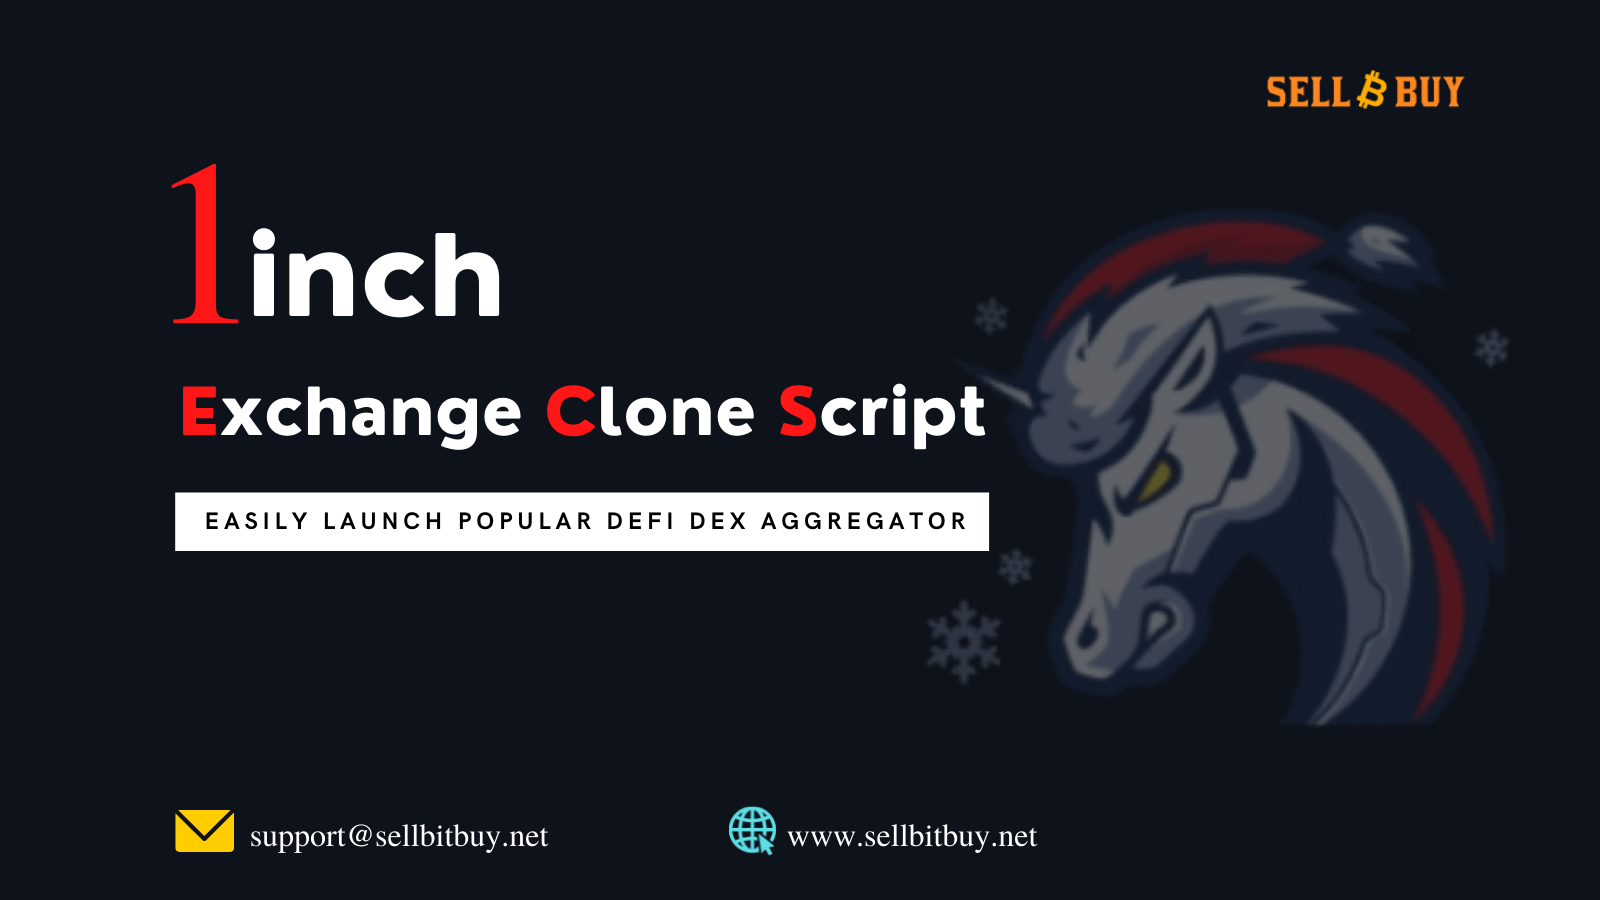 1inch Exchange Clone Script - A Solution To Create DEX Aggregator Like 1inch